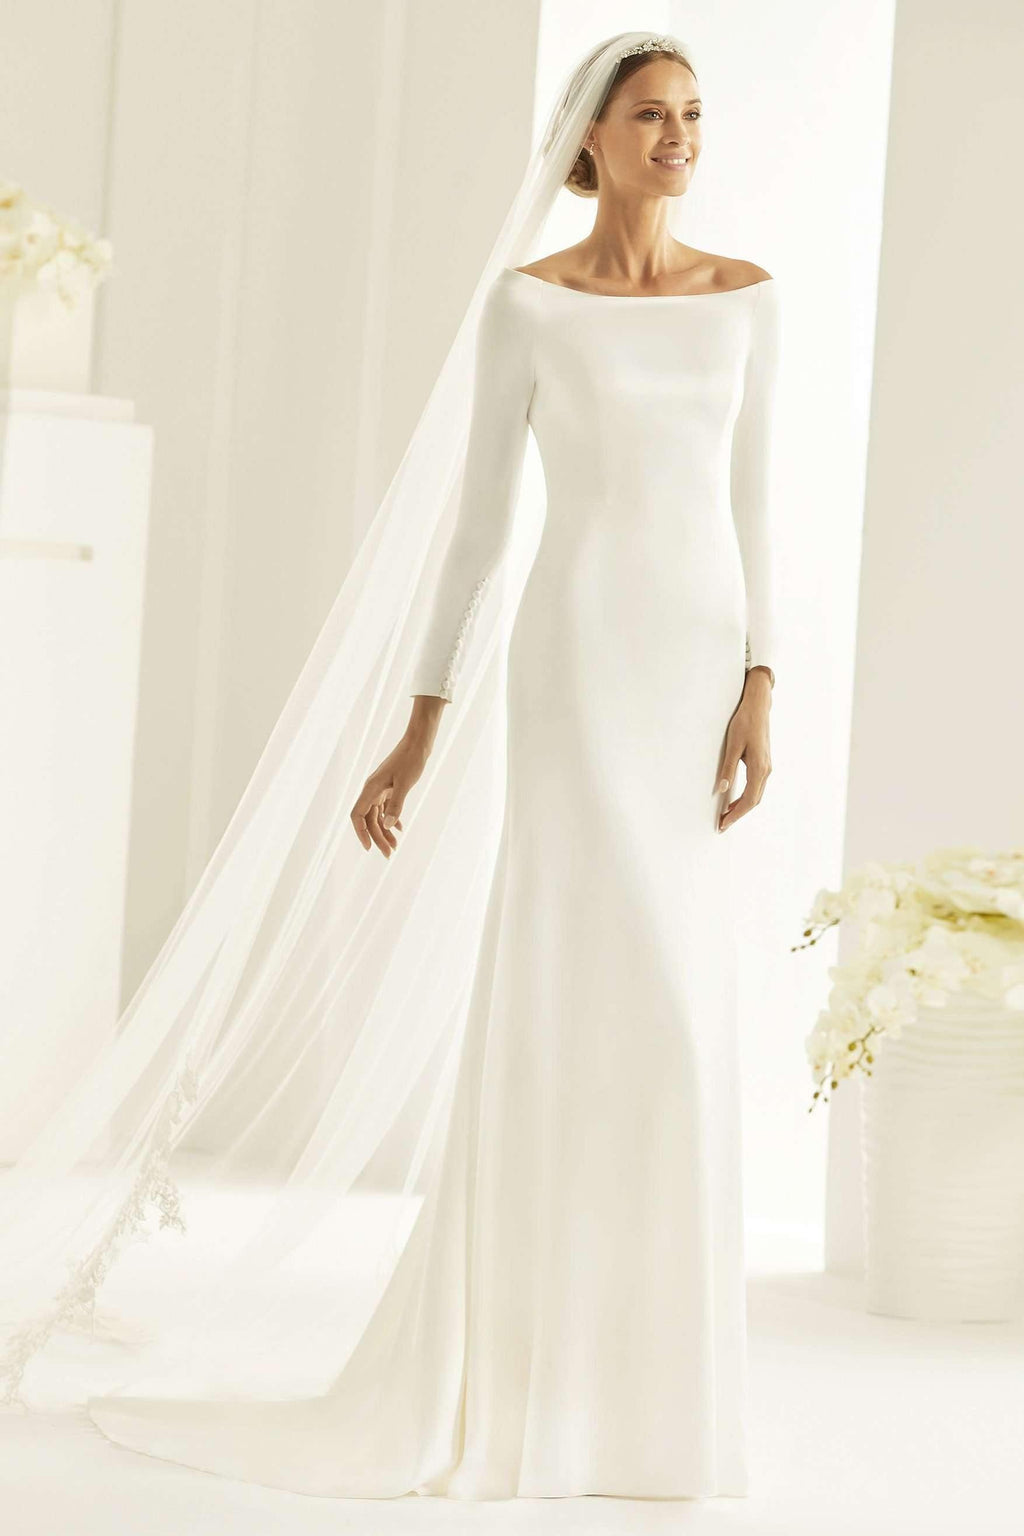 BIANCO EVENTO - Tiffany - Adore Bridal and Occasion Wear